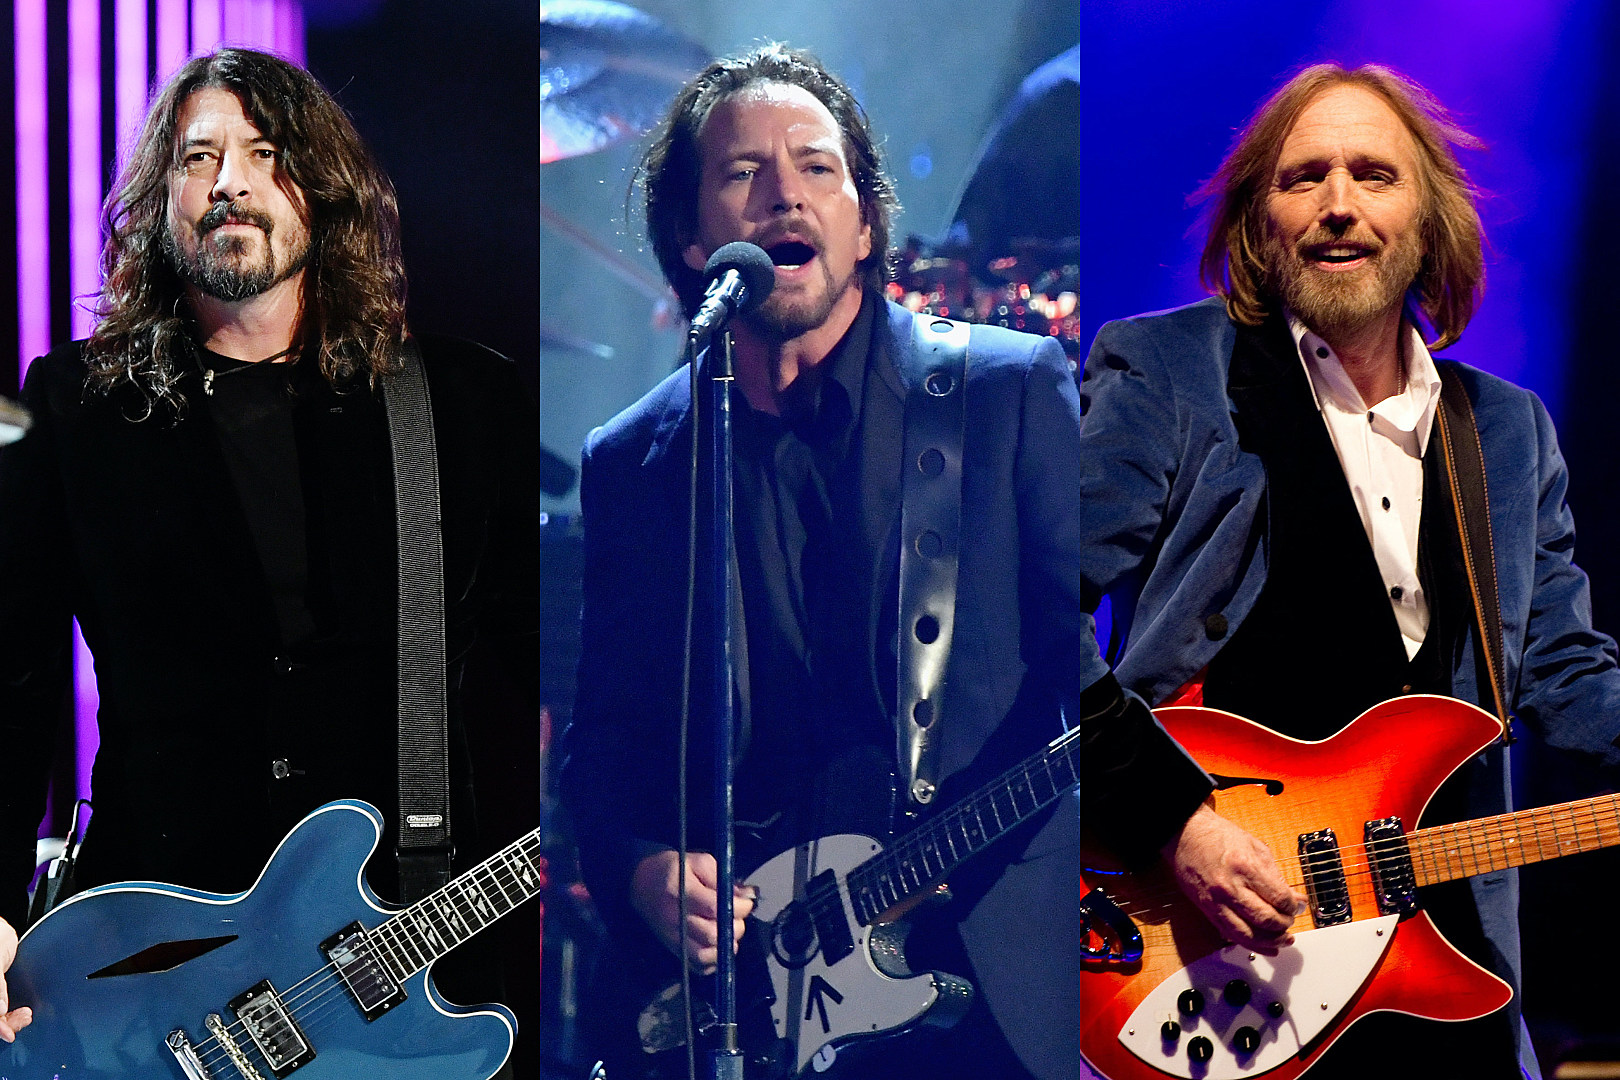 Pictured (L-R): Musicians Dave Grohl of Foo Fighters, Eddie Vedder of Pearl Jam and Tom Petty of Tom Petty and the Heartbreakers